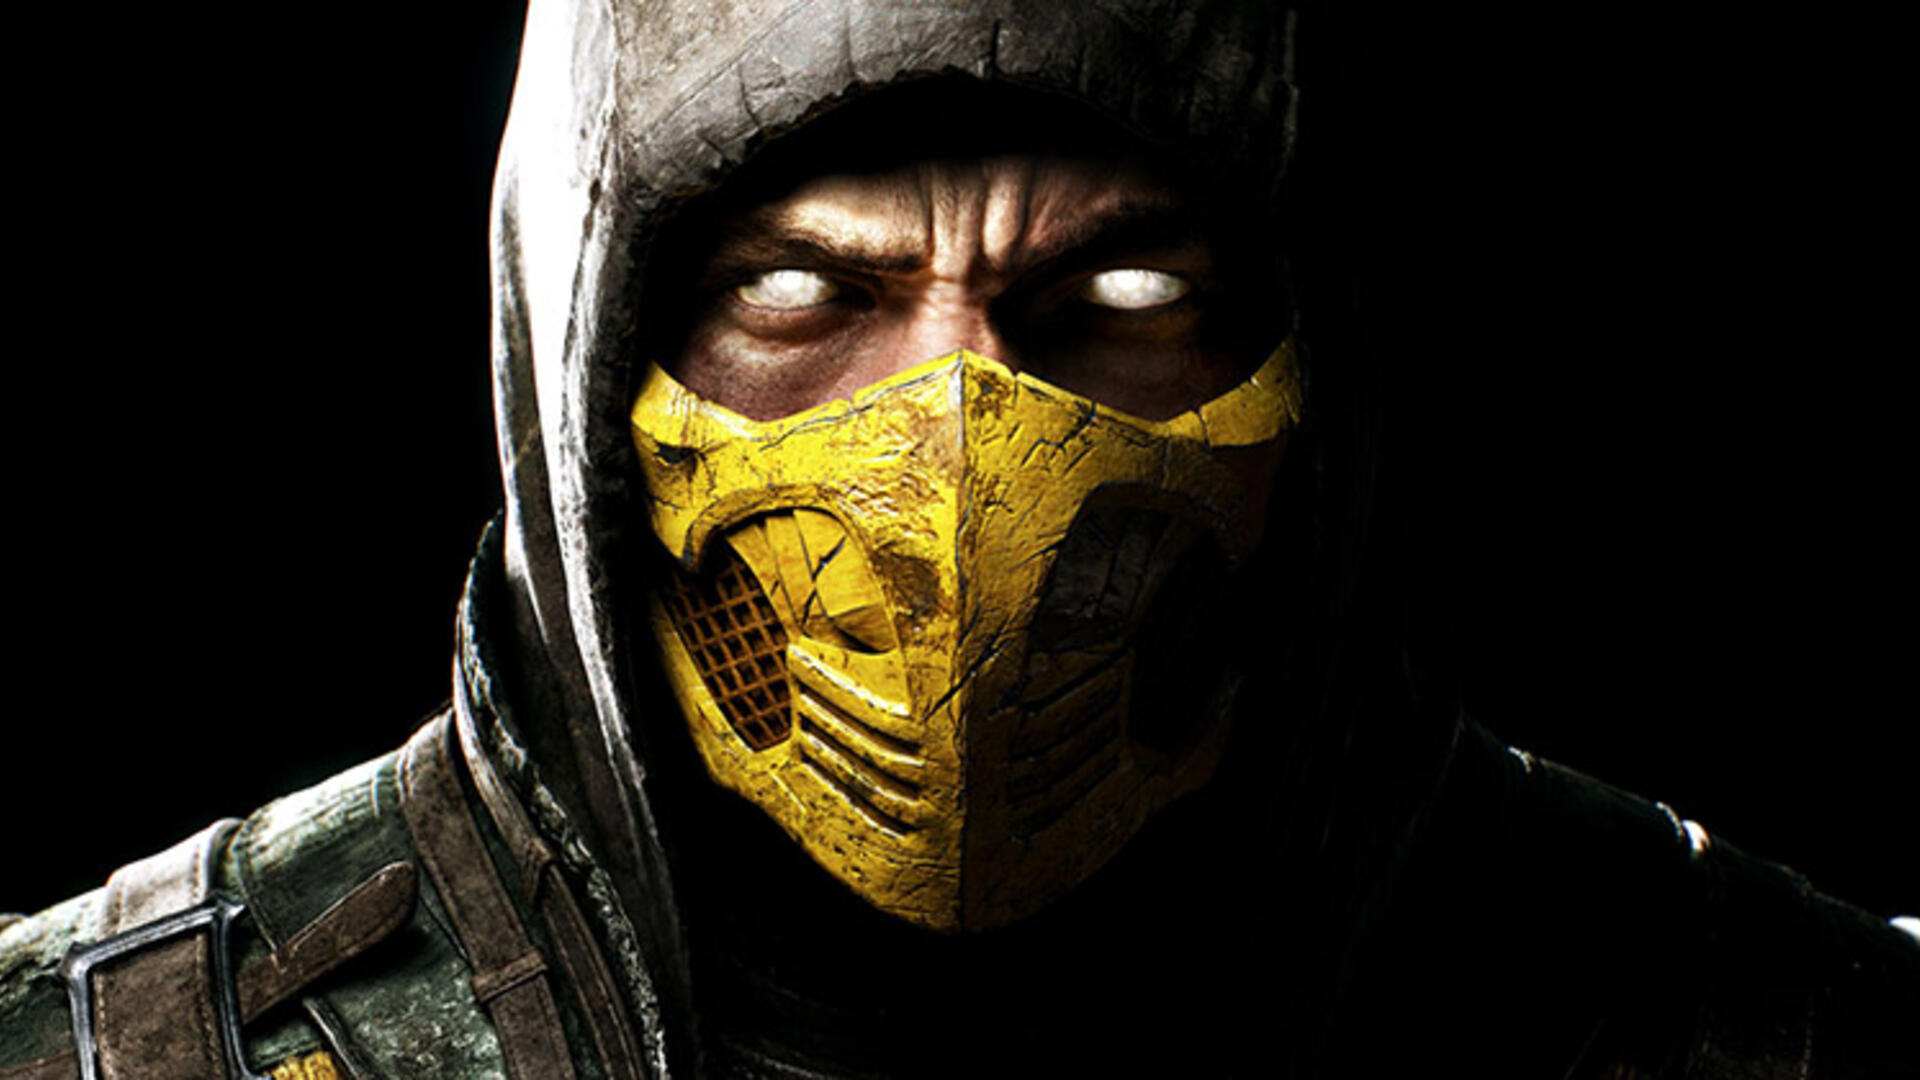 Mortal Kombat X PlayStation 4 Review: Fatality Attraction